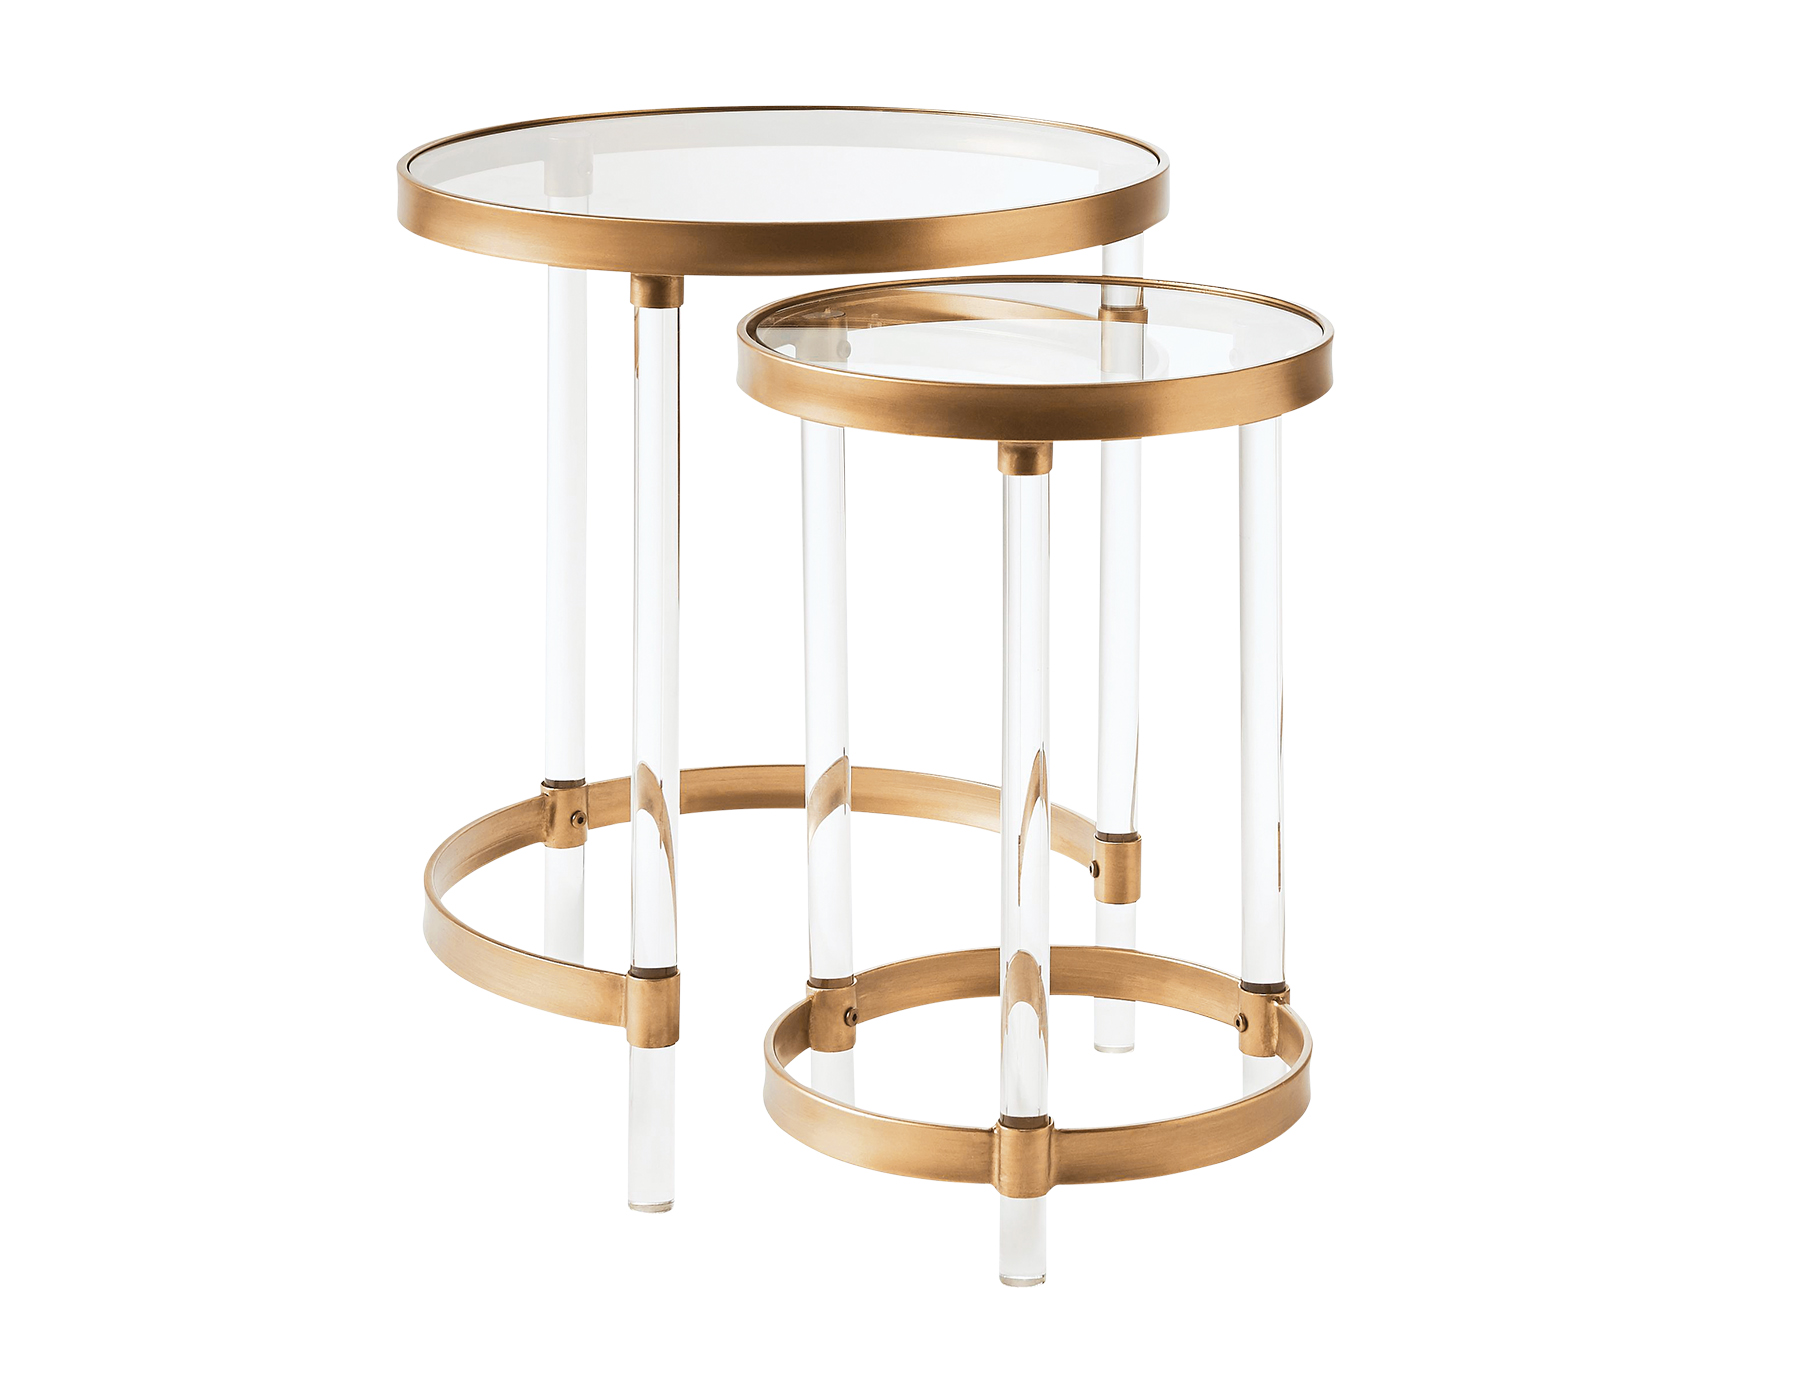 Round acrylic nesting tables